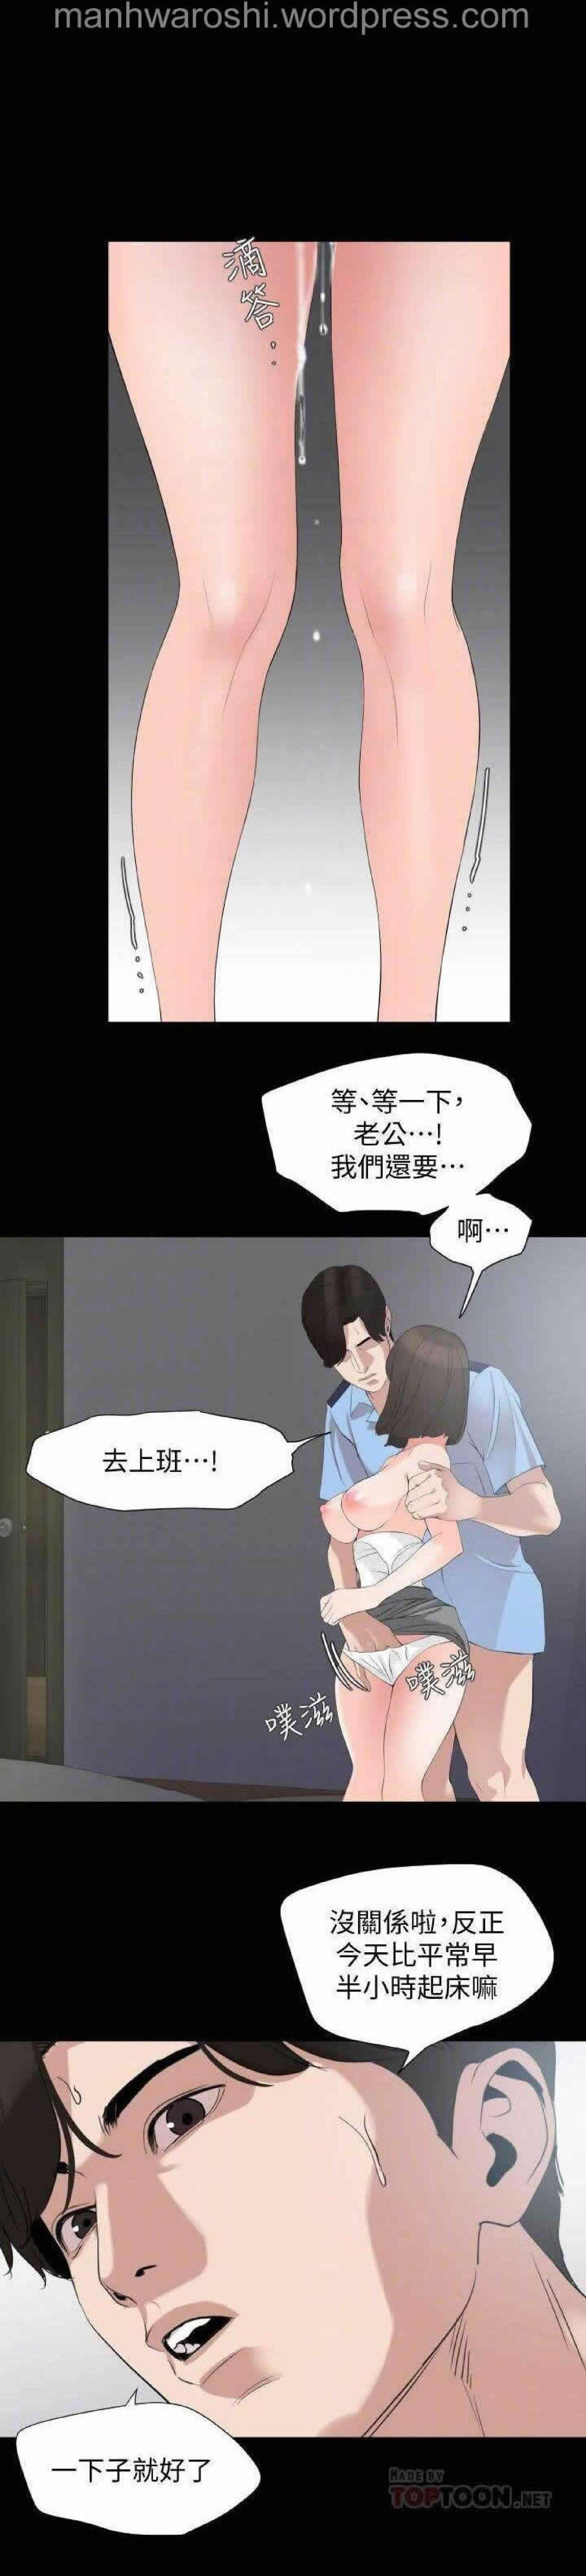 Don't Be Like This! Son-In-Law | 与岳母同屋 第 7 [Chinese] Manhwa 15